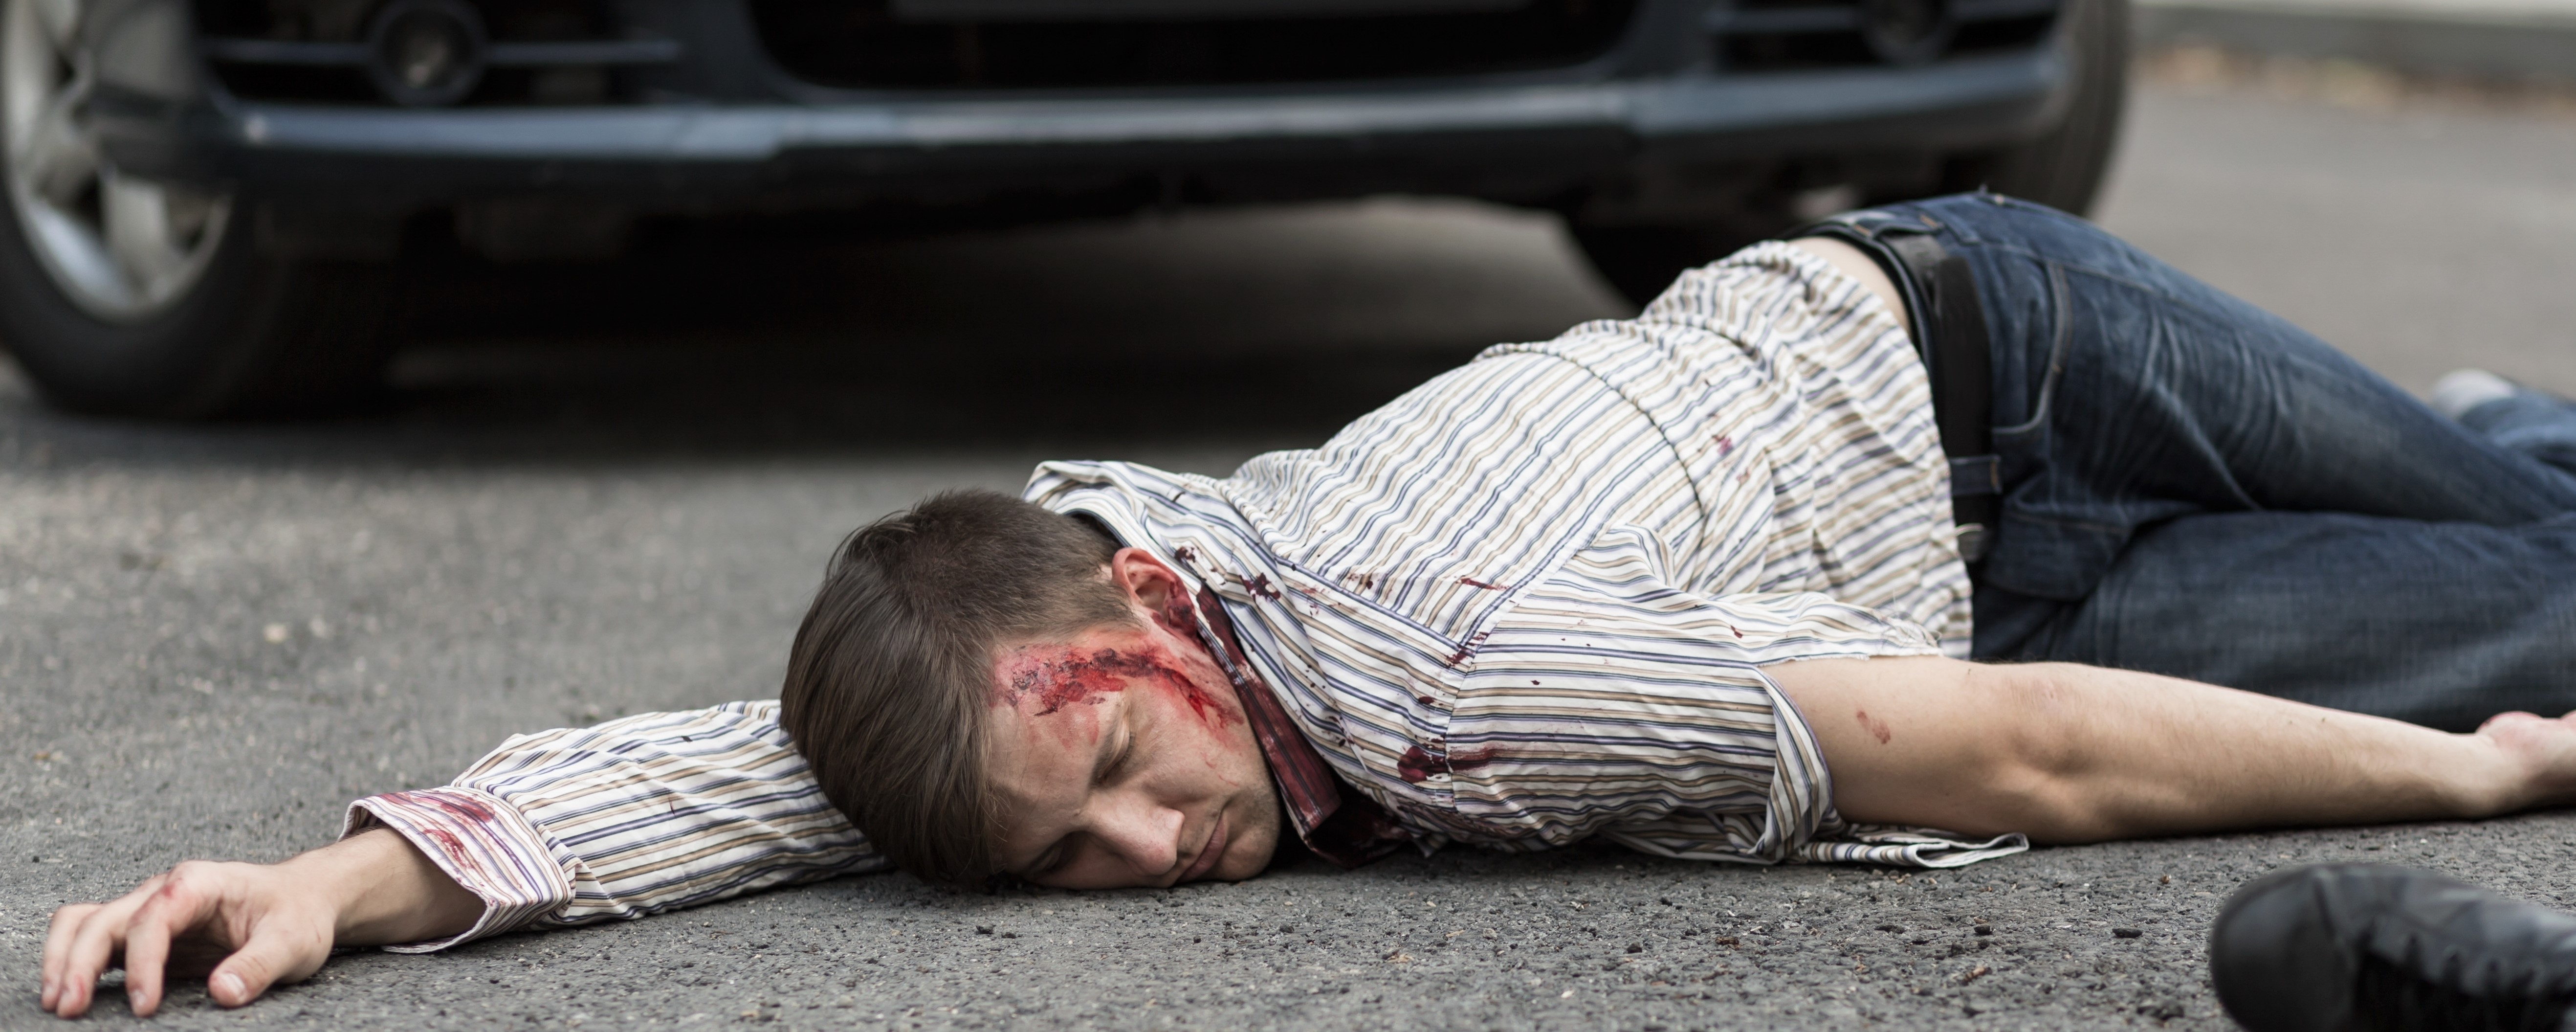 15++ car accident lawyer san diegoPictures HQ Free Download